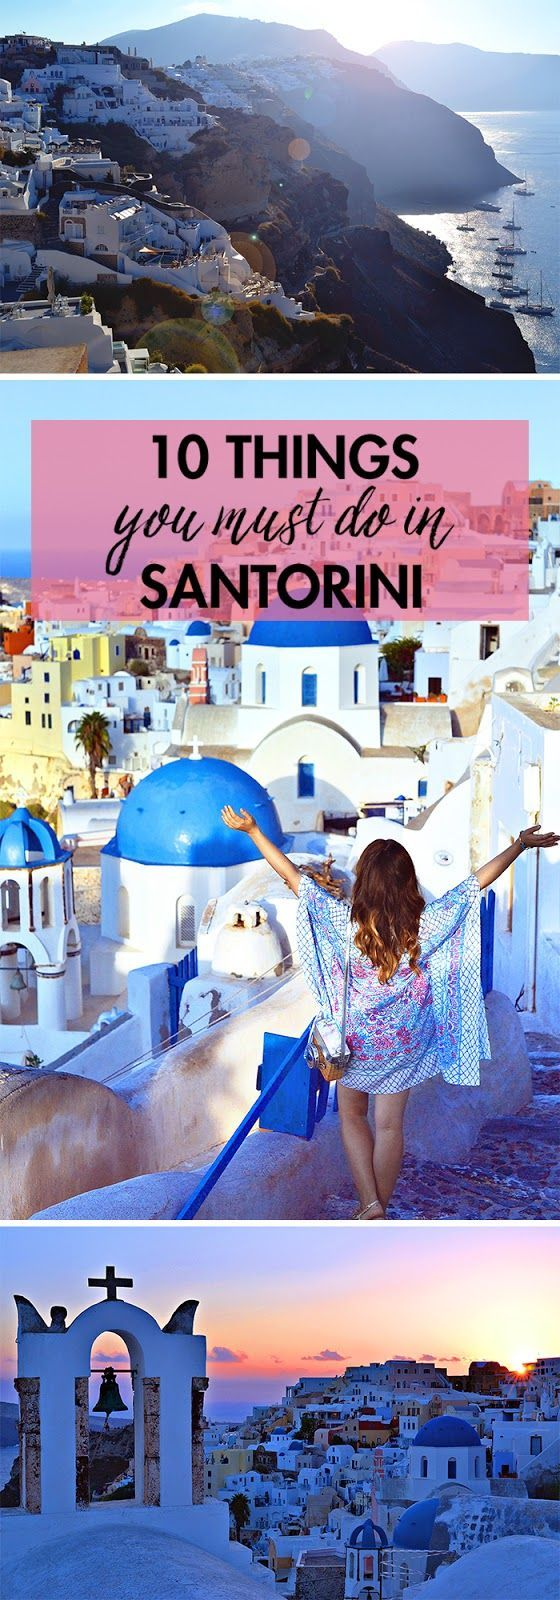 Things You Must Do In Santorini History In High Heels Visit - 10 things to see and do on your trip to santorini greece